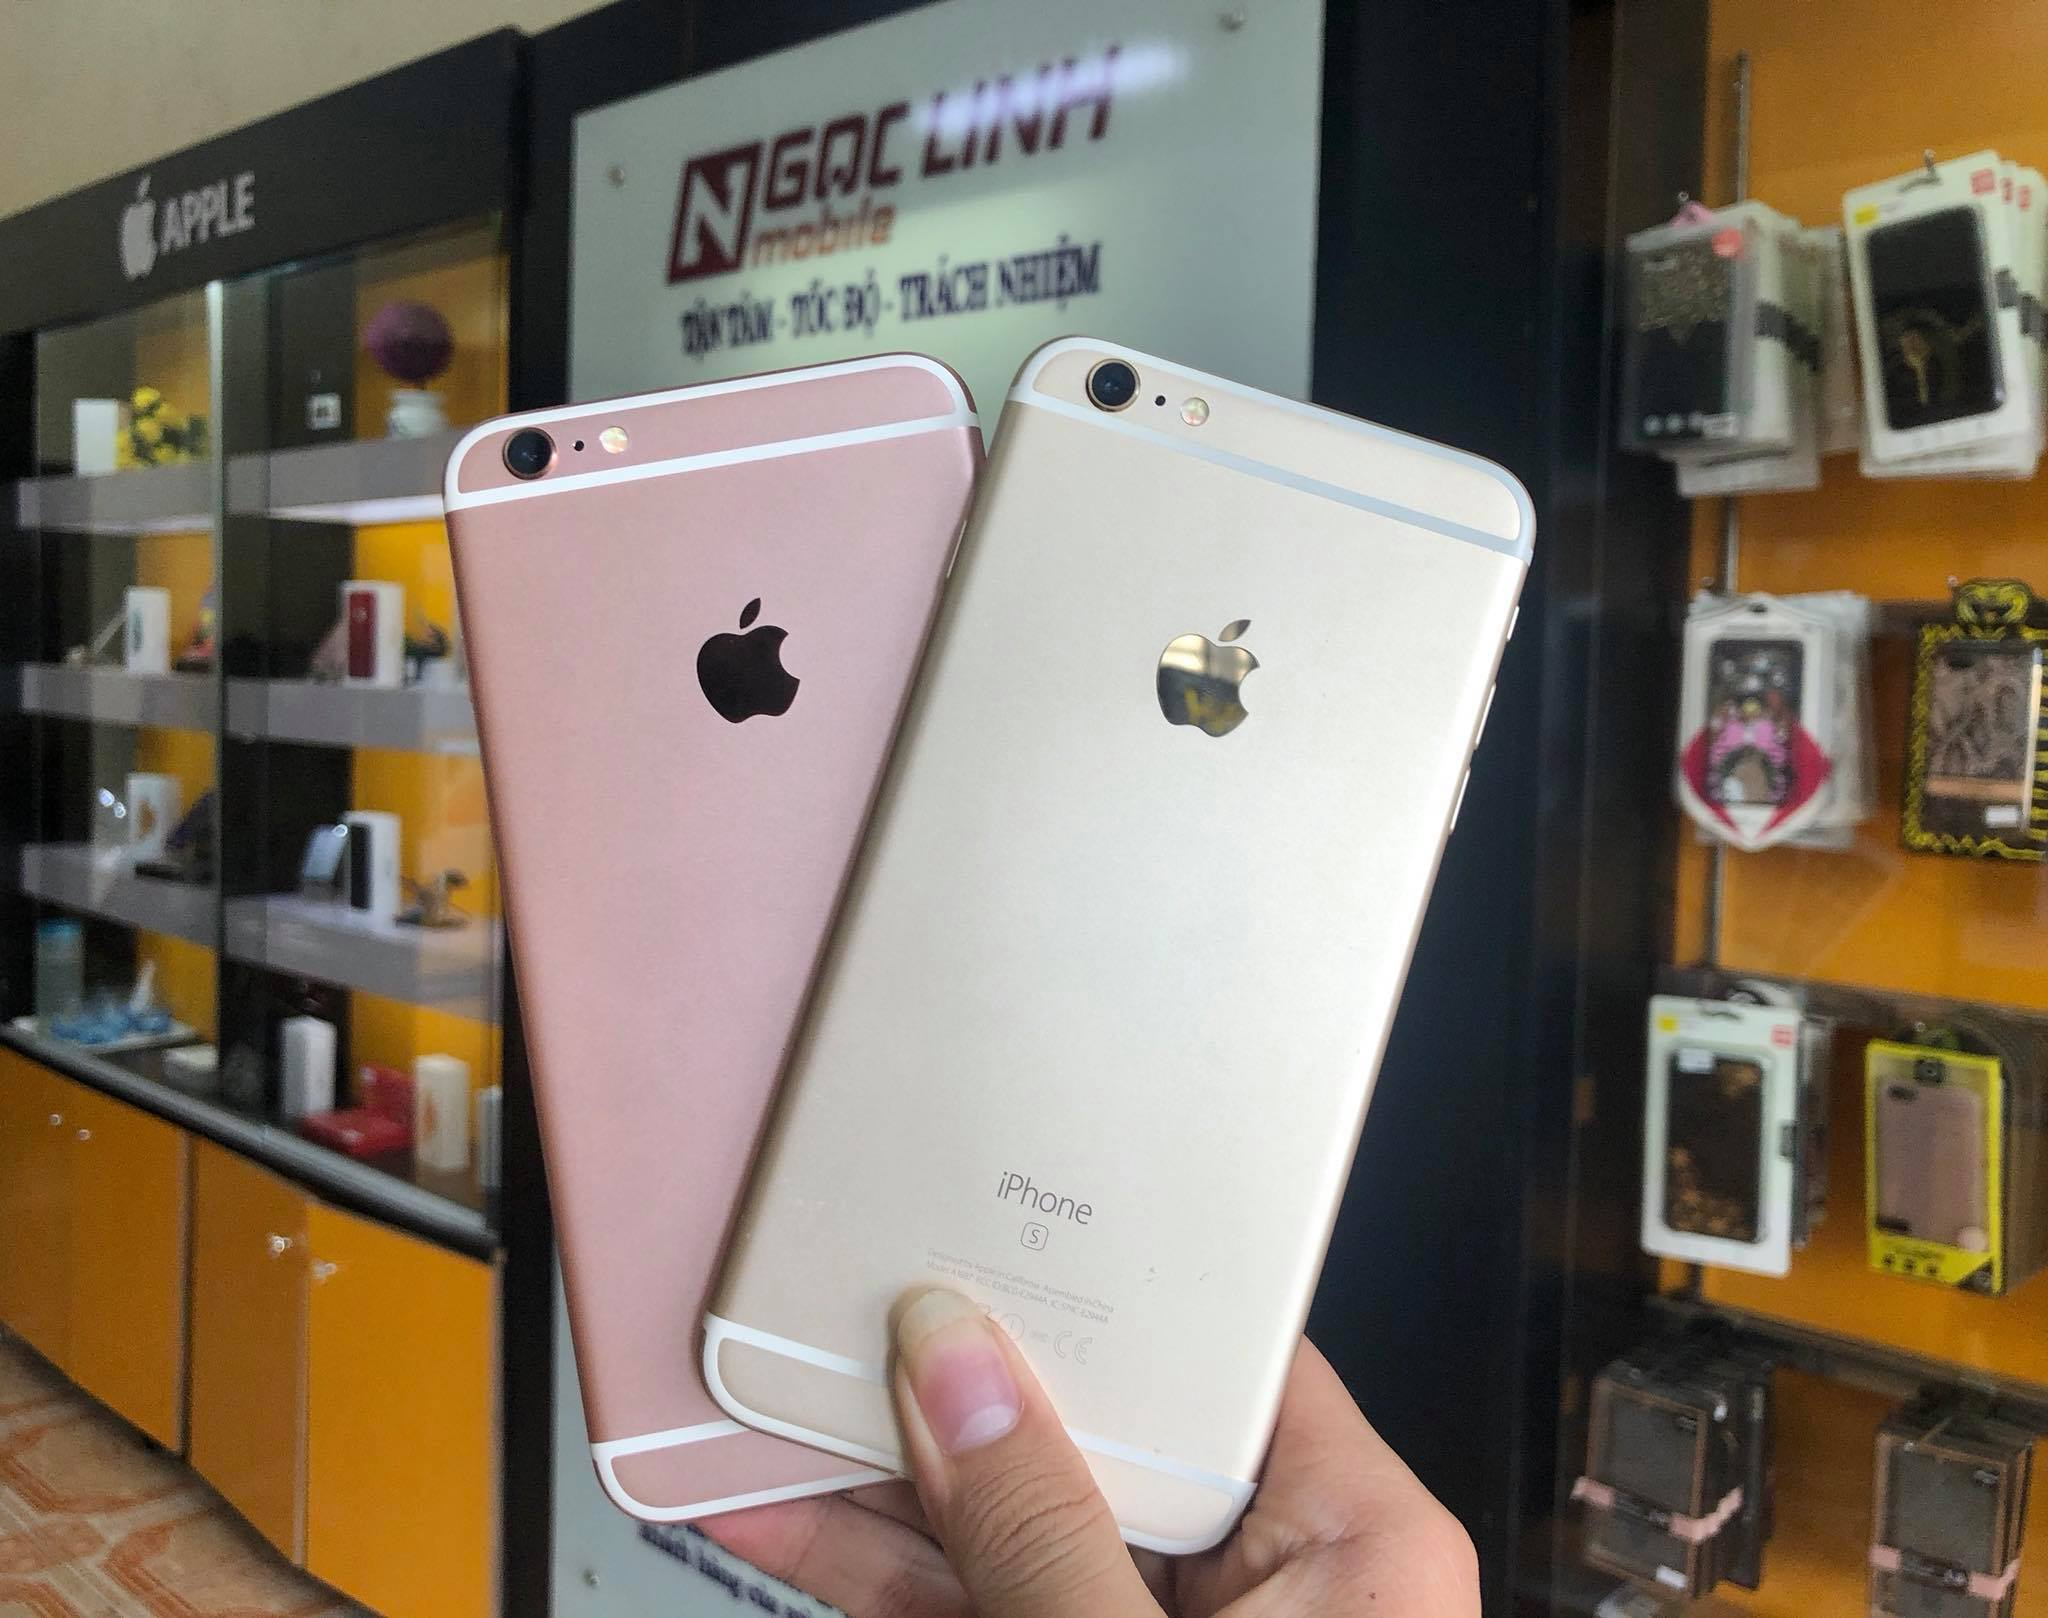 iPhone 6s Plus 16GB, iphone hàng lướt, iPhone 6s Plus 64GB  - iPhone 6s Plus 64GB